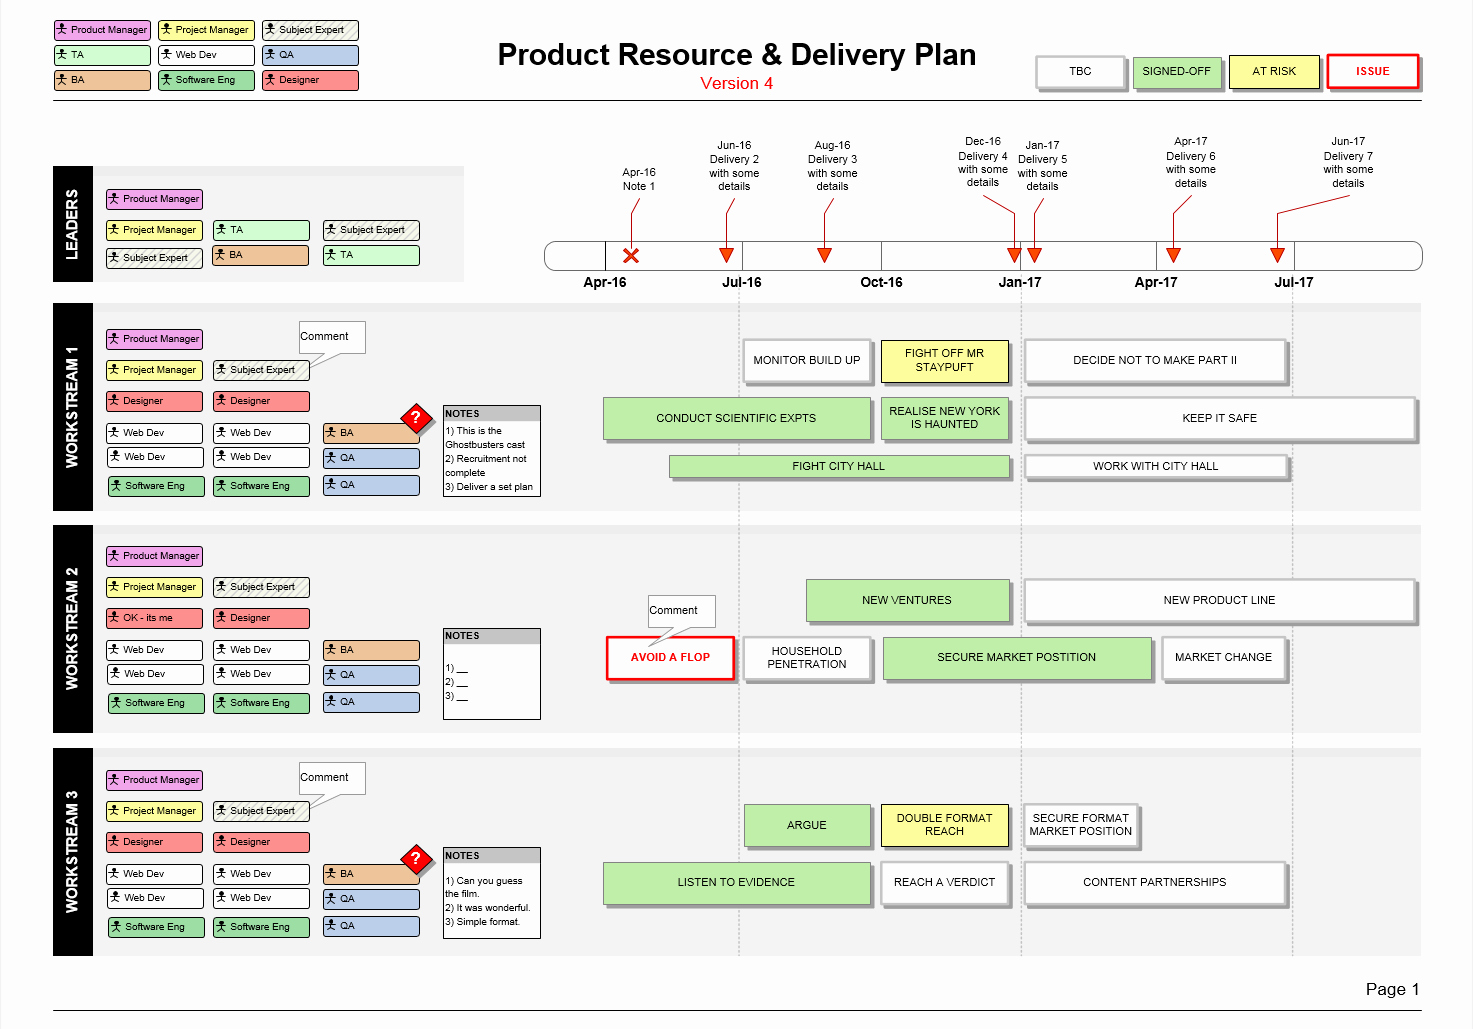 Resource Plan Template Excel Best Of Product Resource Delivery Plan Teams Roles & Timeline